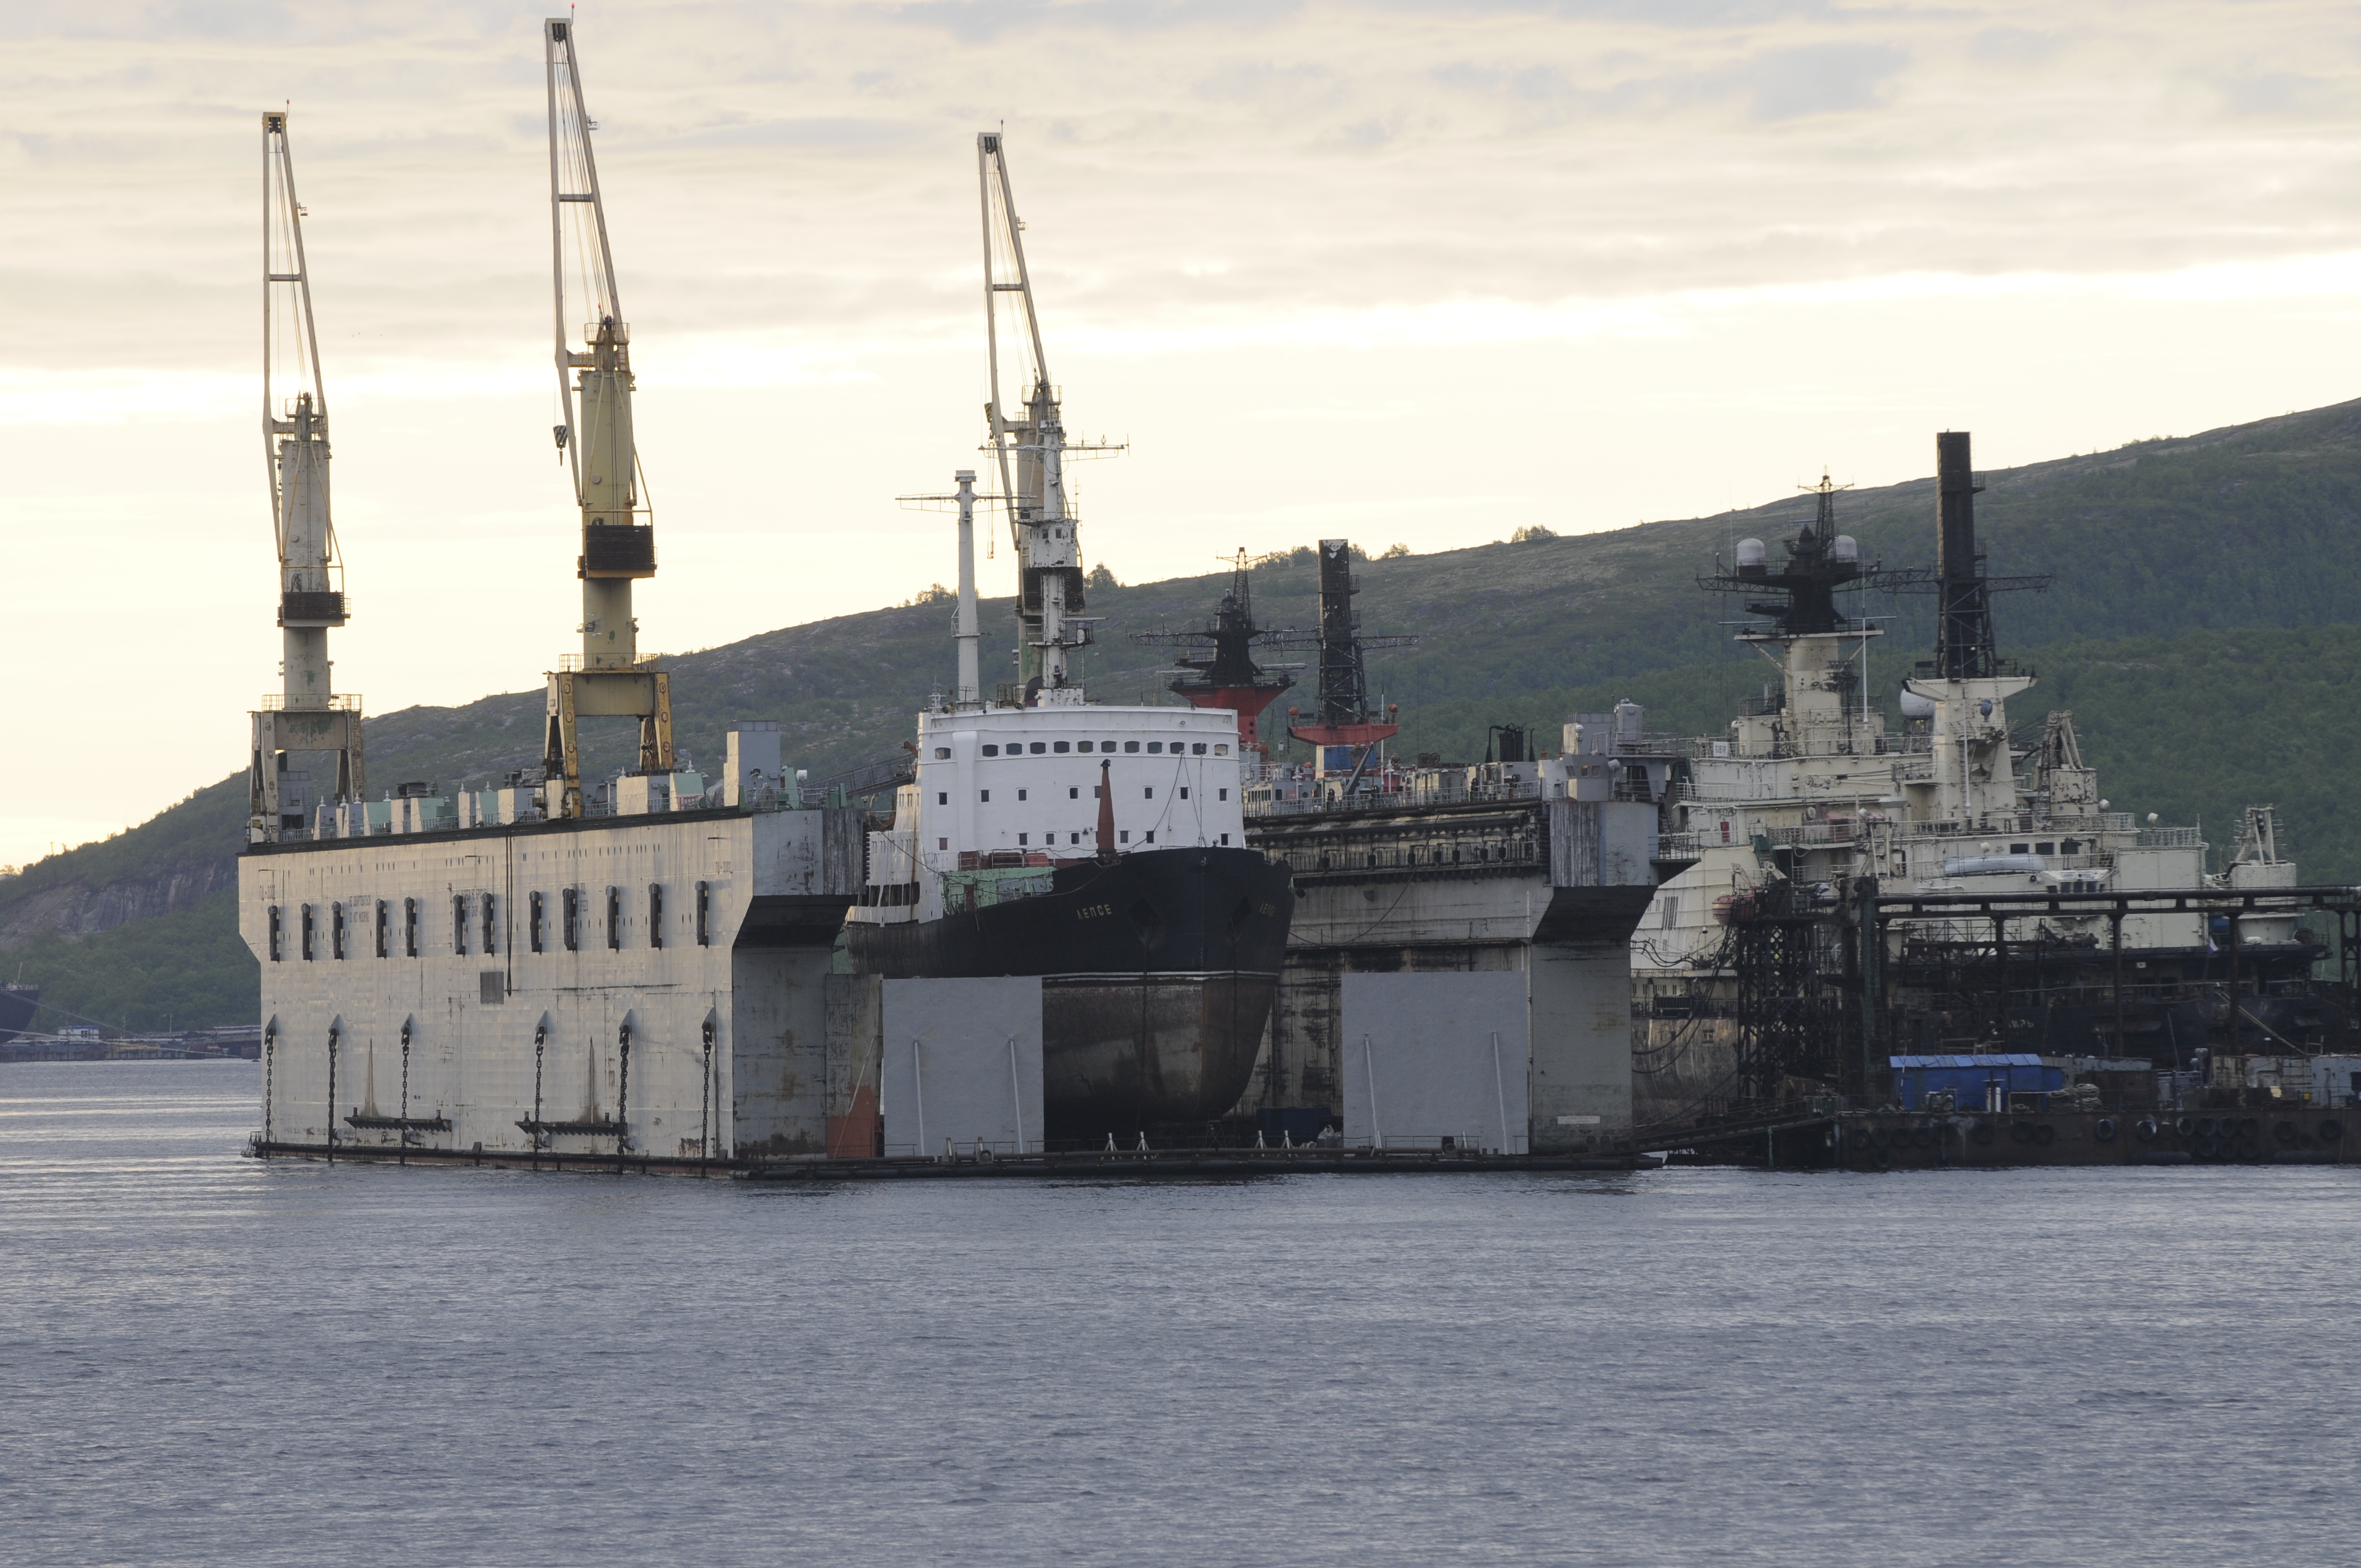 Work begins to remove nuclear waste from old Russian ship in Murmansk